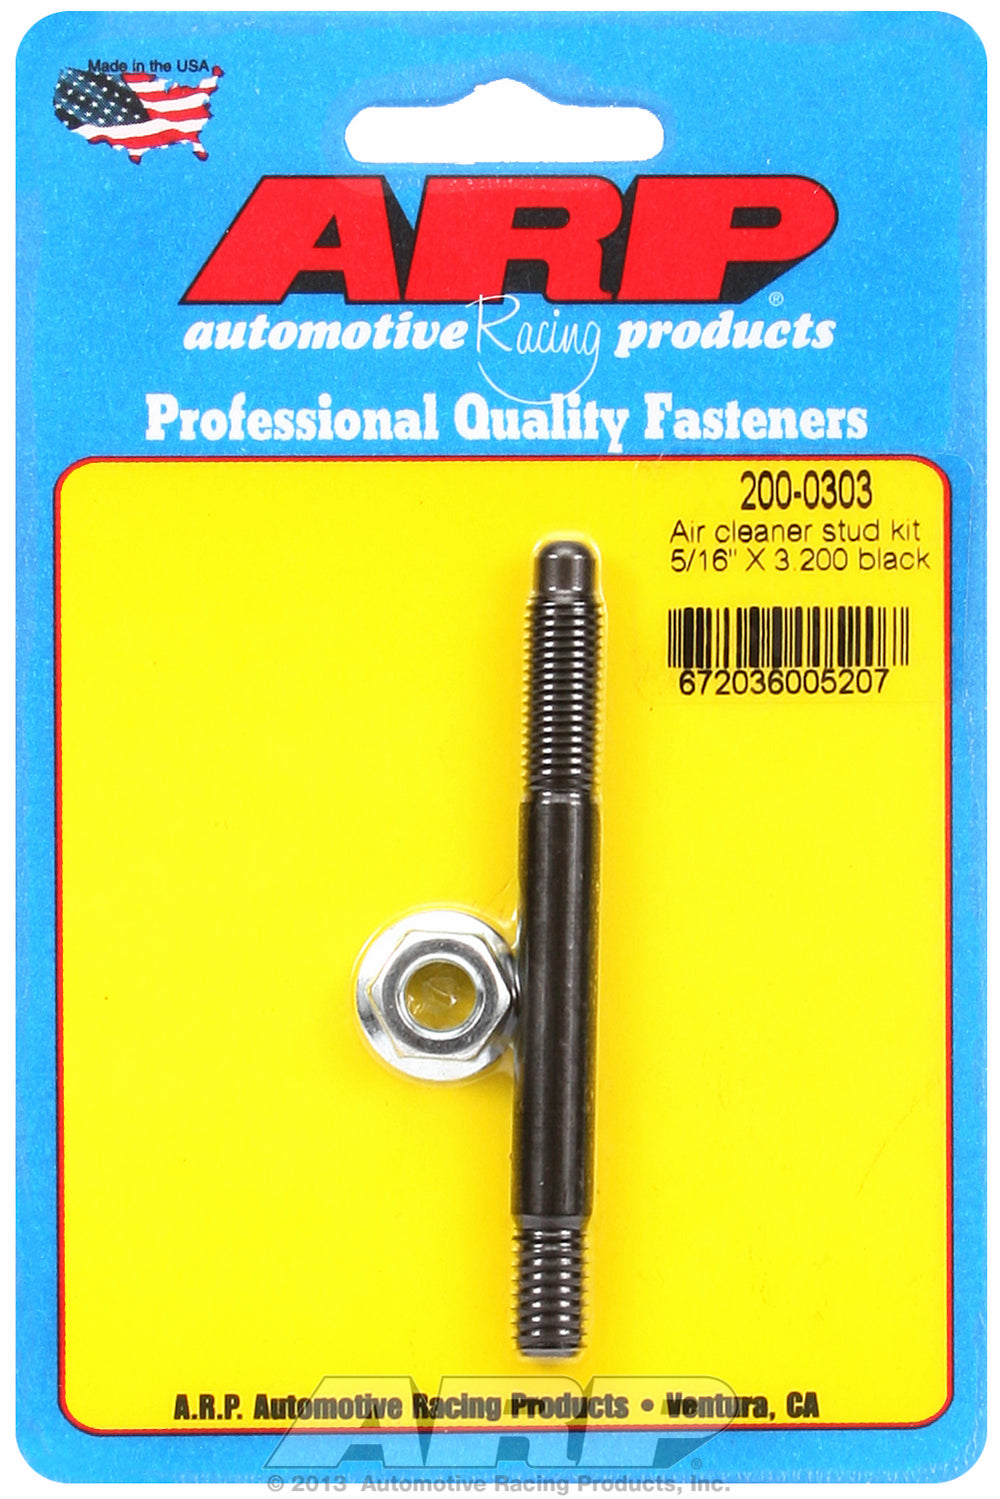 Black Oxide 5/16in x 3.200 air cleaner stud kit